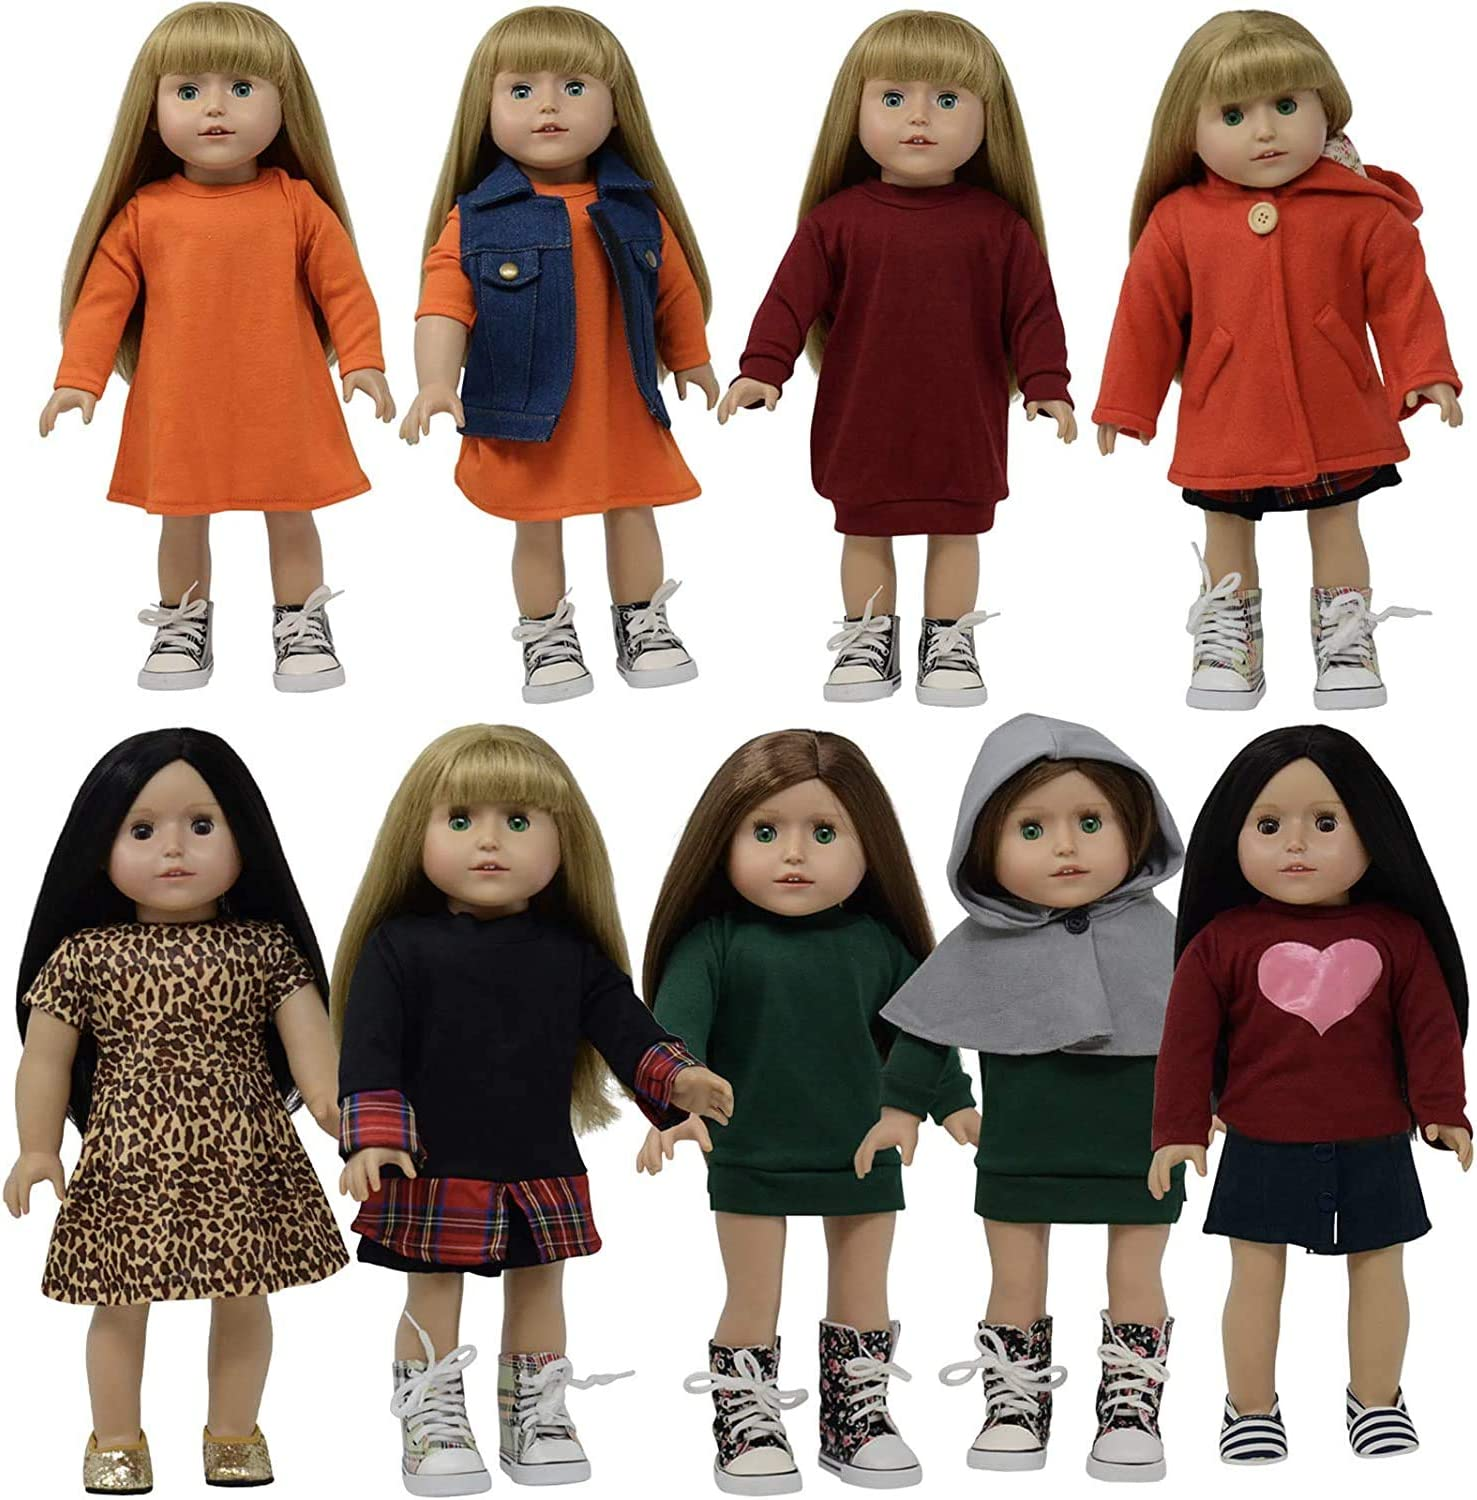 18 Inch Doll Clothes Dress and Doll Accessories (Winter Clothing Set)